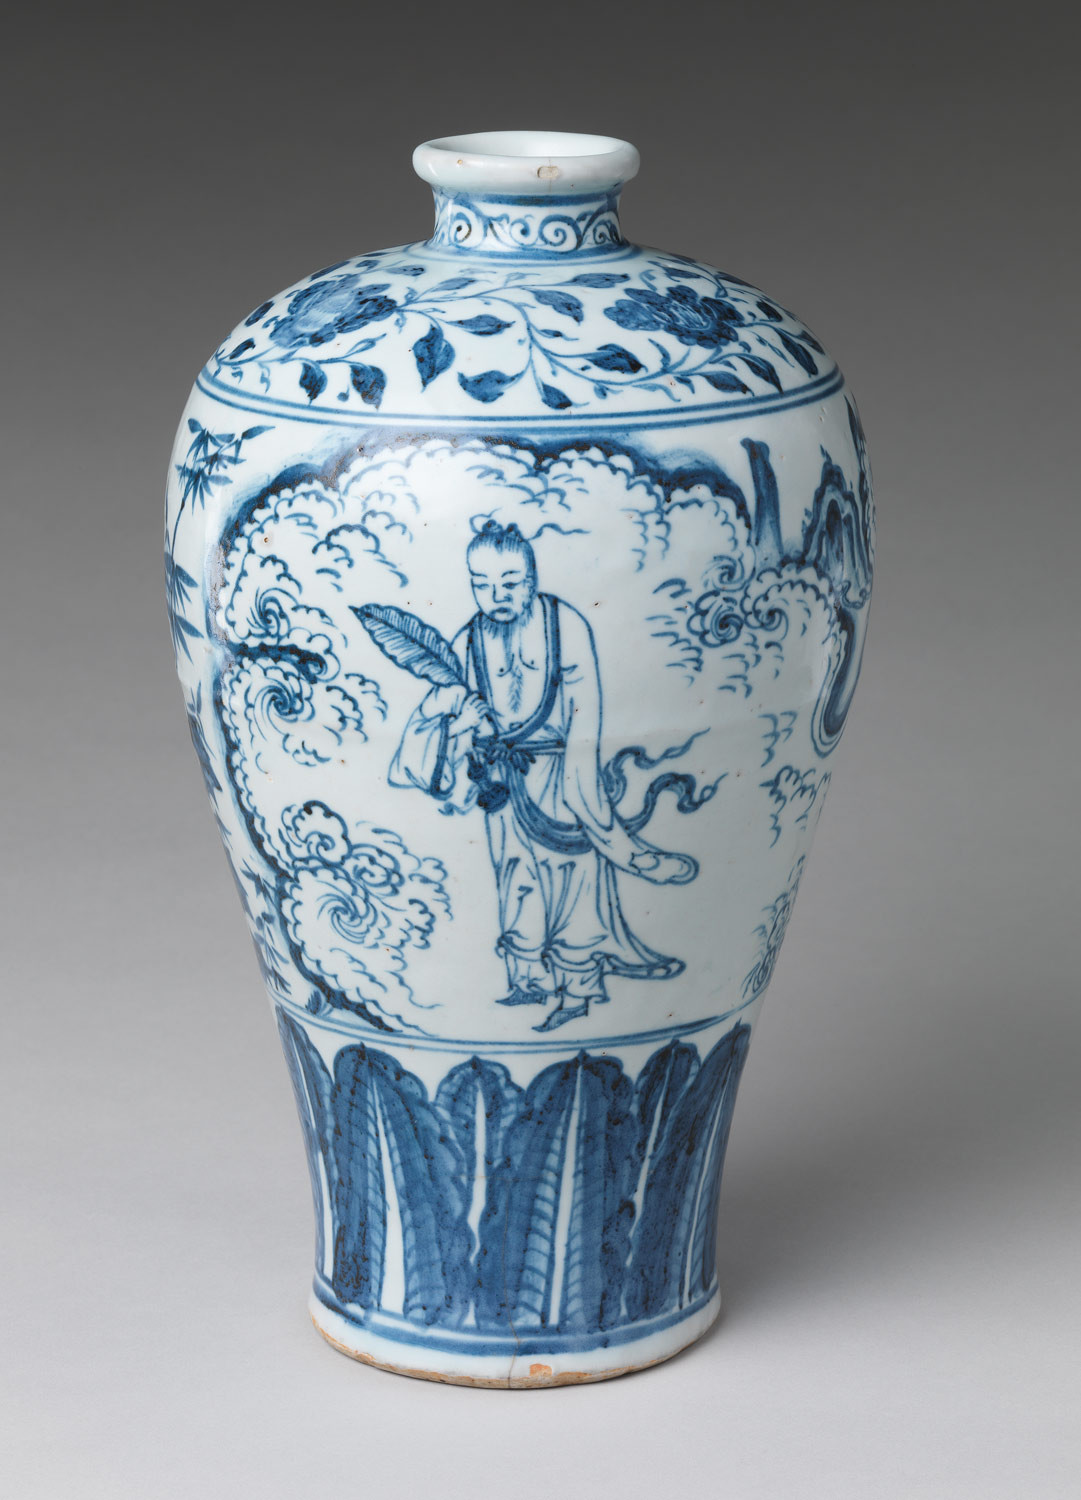 17th century chinese vase of daoism and daoist art essay heilbrunn timeline of art history inside vase in meiping shape with daoist immortal zhongli quan